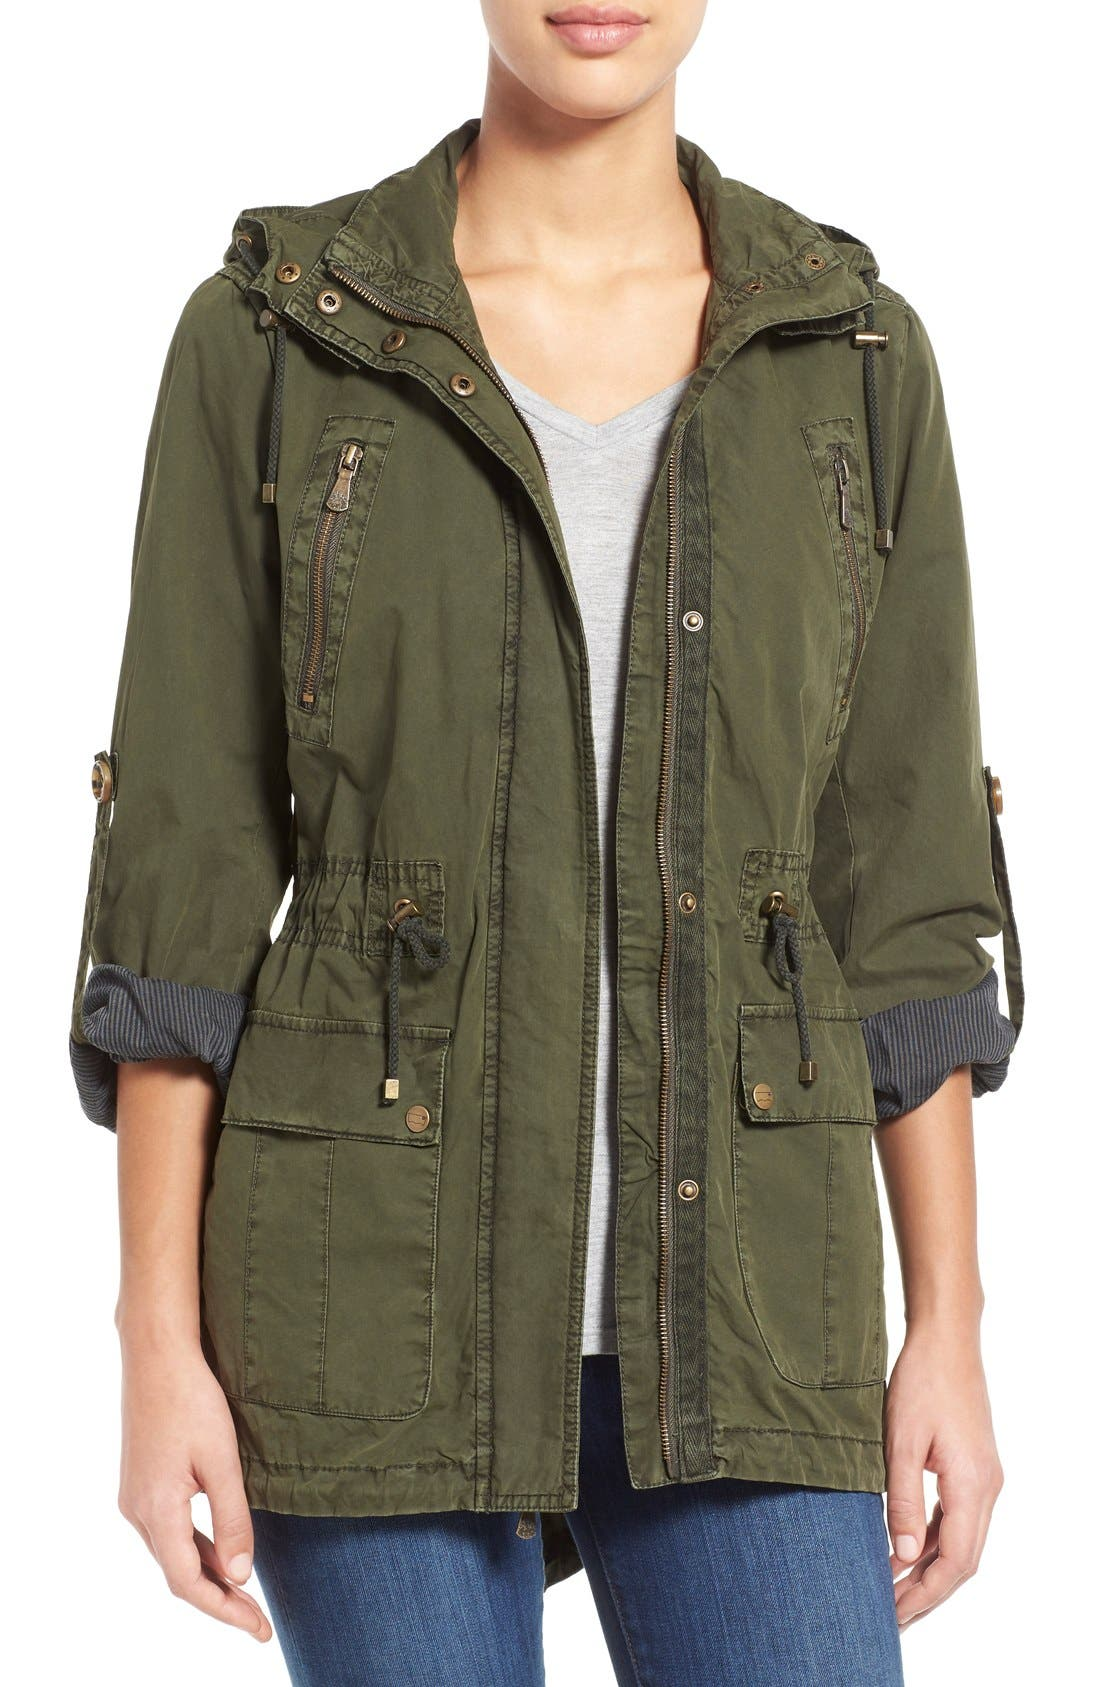 Parachute Hooded Cotton Utility Jacket,                         Main,                         color, Army Green